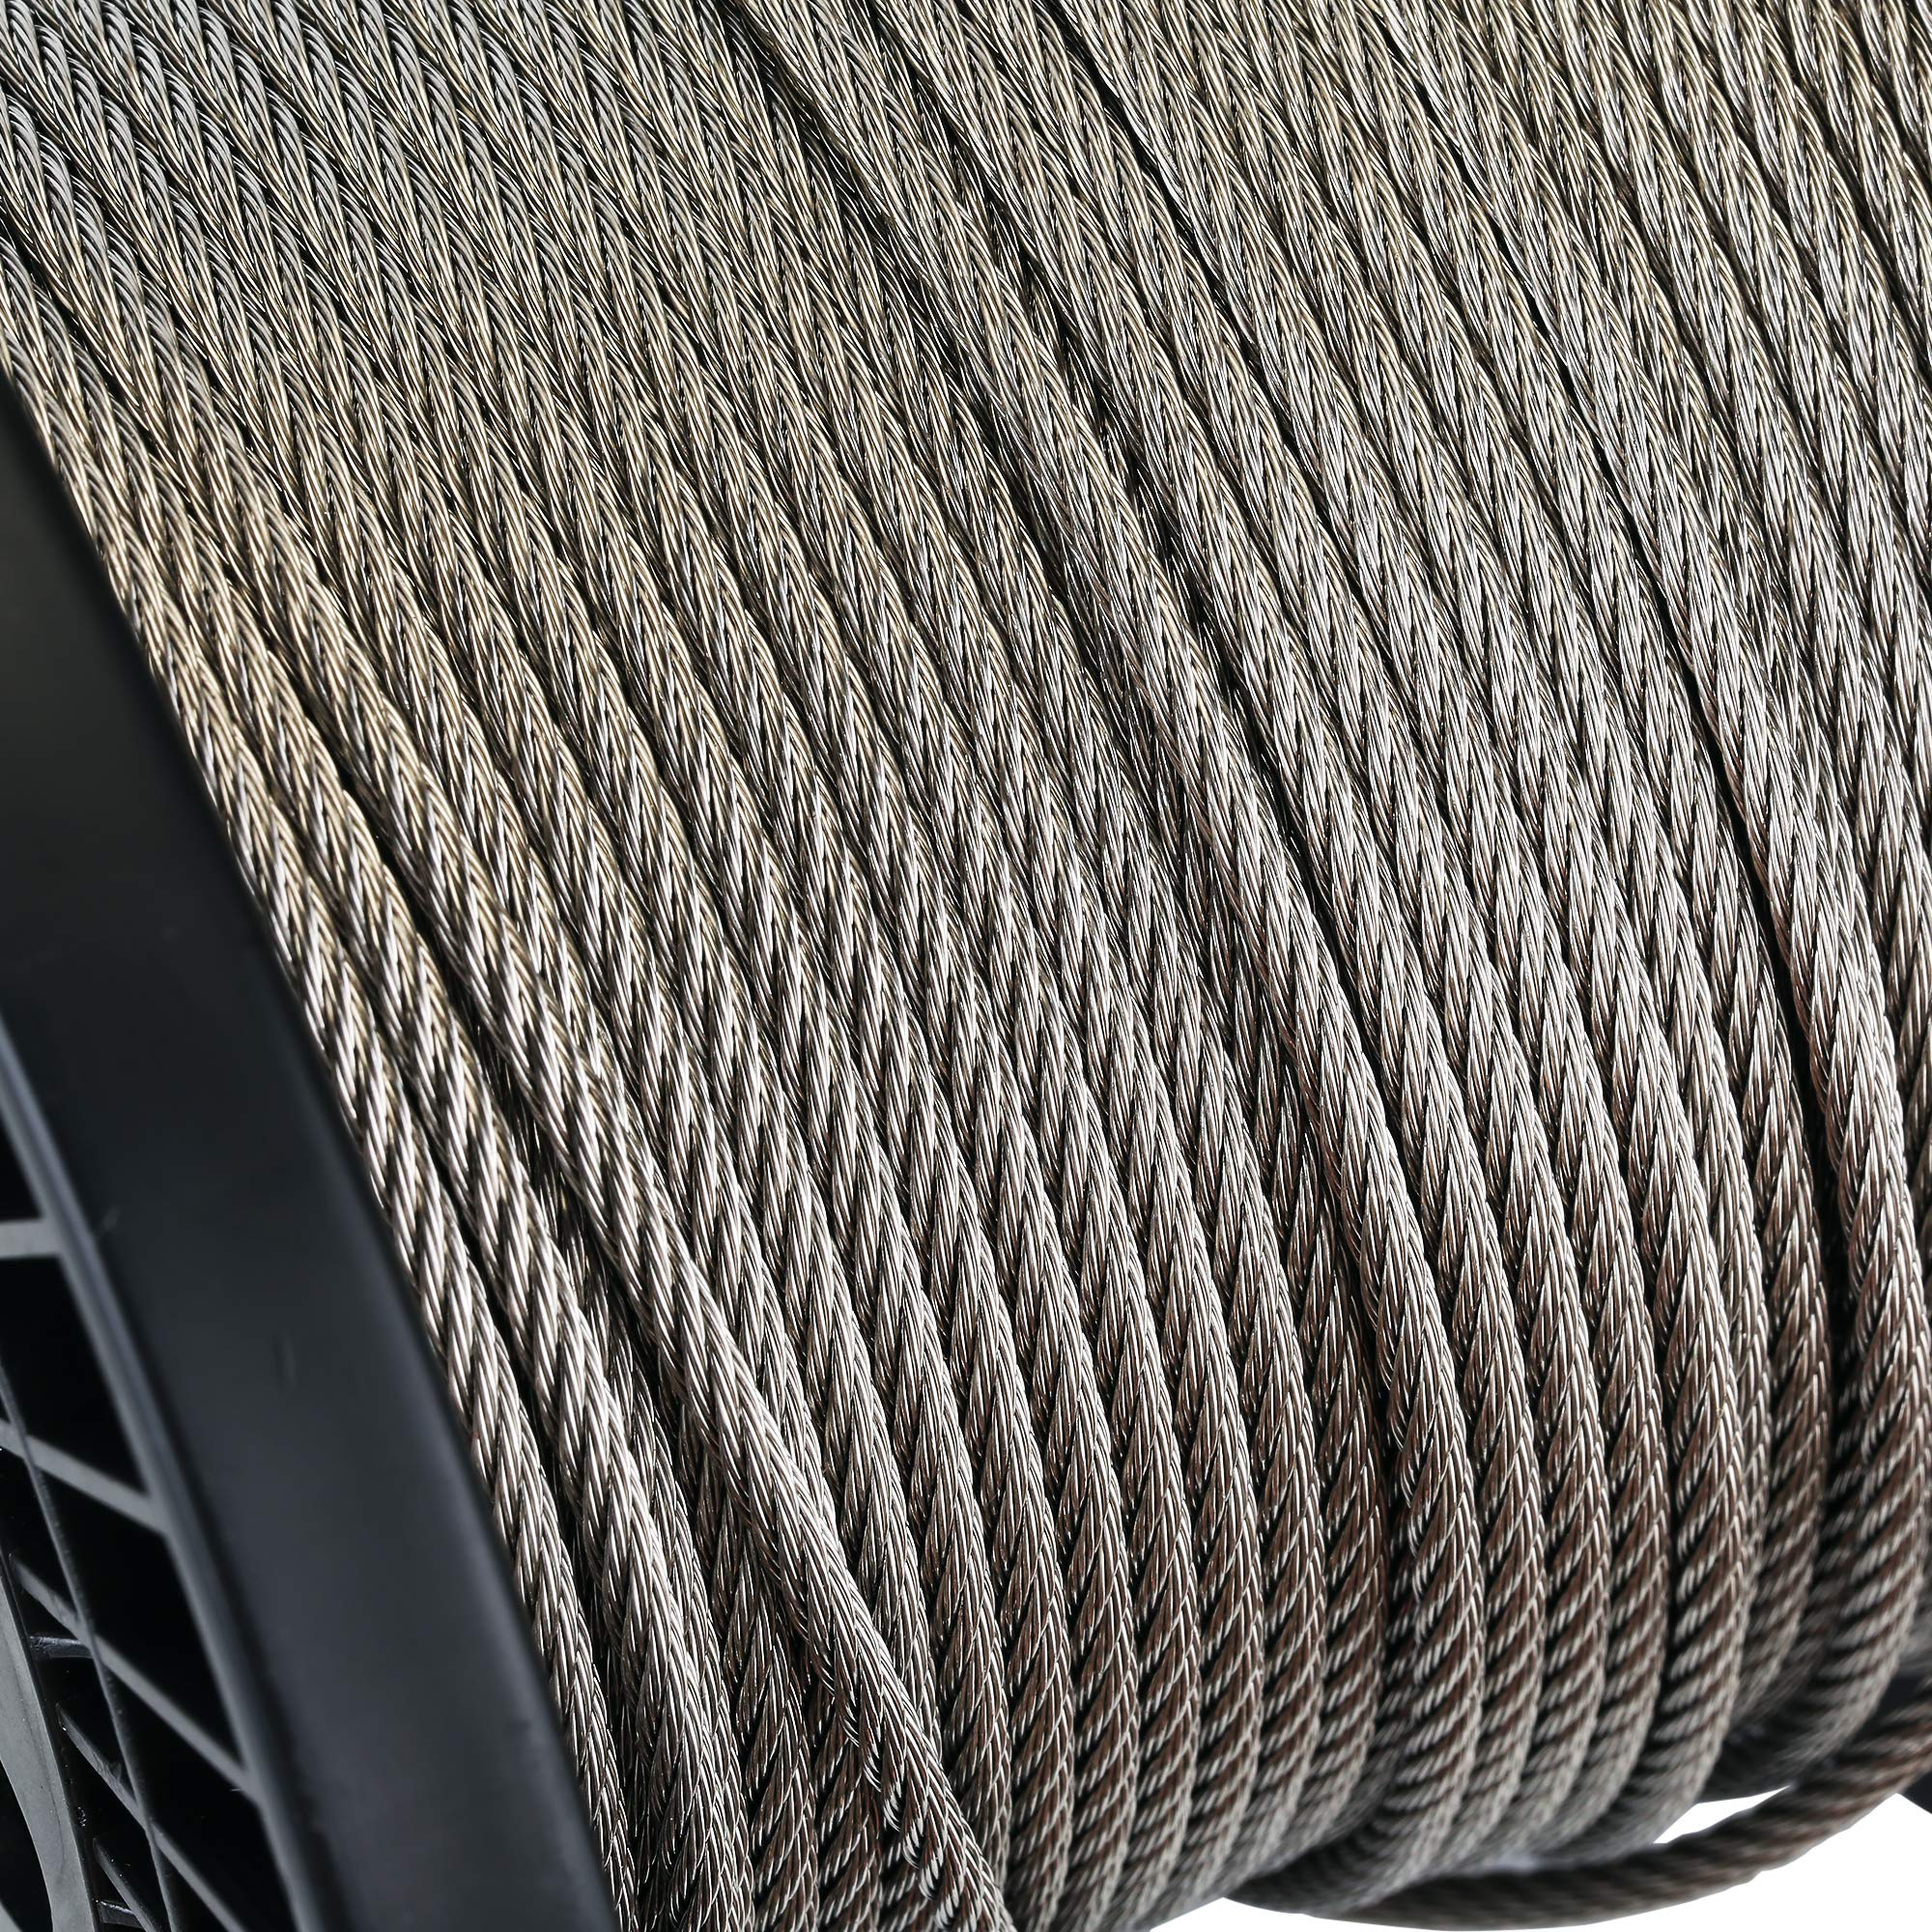 Zoostliss 200Ft Stainless Steel Aircraft Wire Rope 1/8'' for Deck Cable Railing Kit, 7x7 T316 Marin Grade by Zoostliss (Image #3)